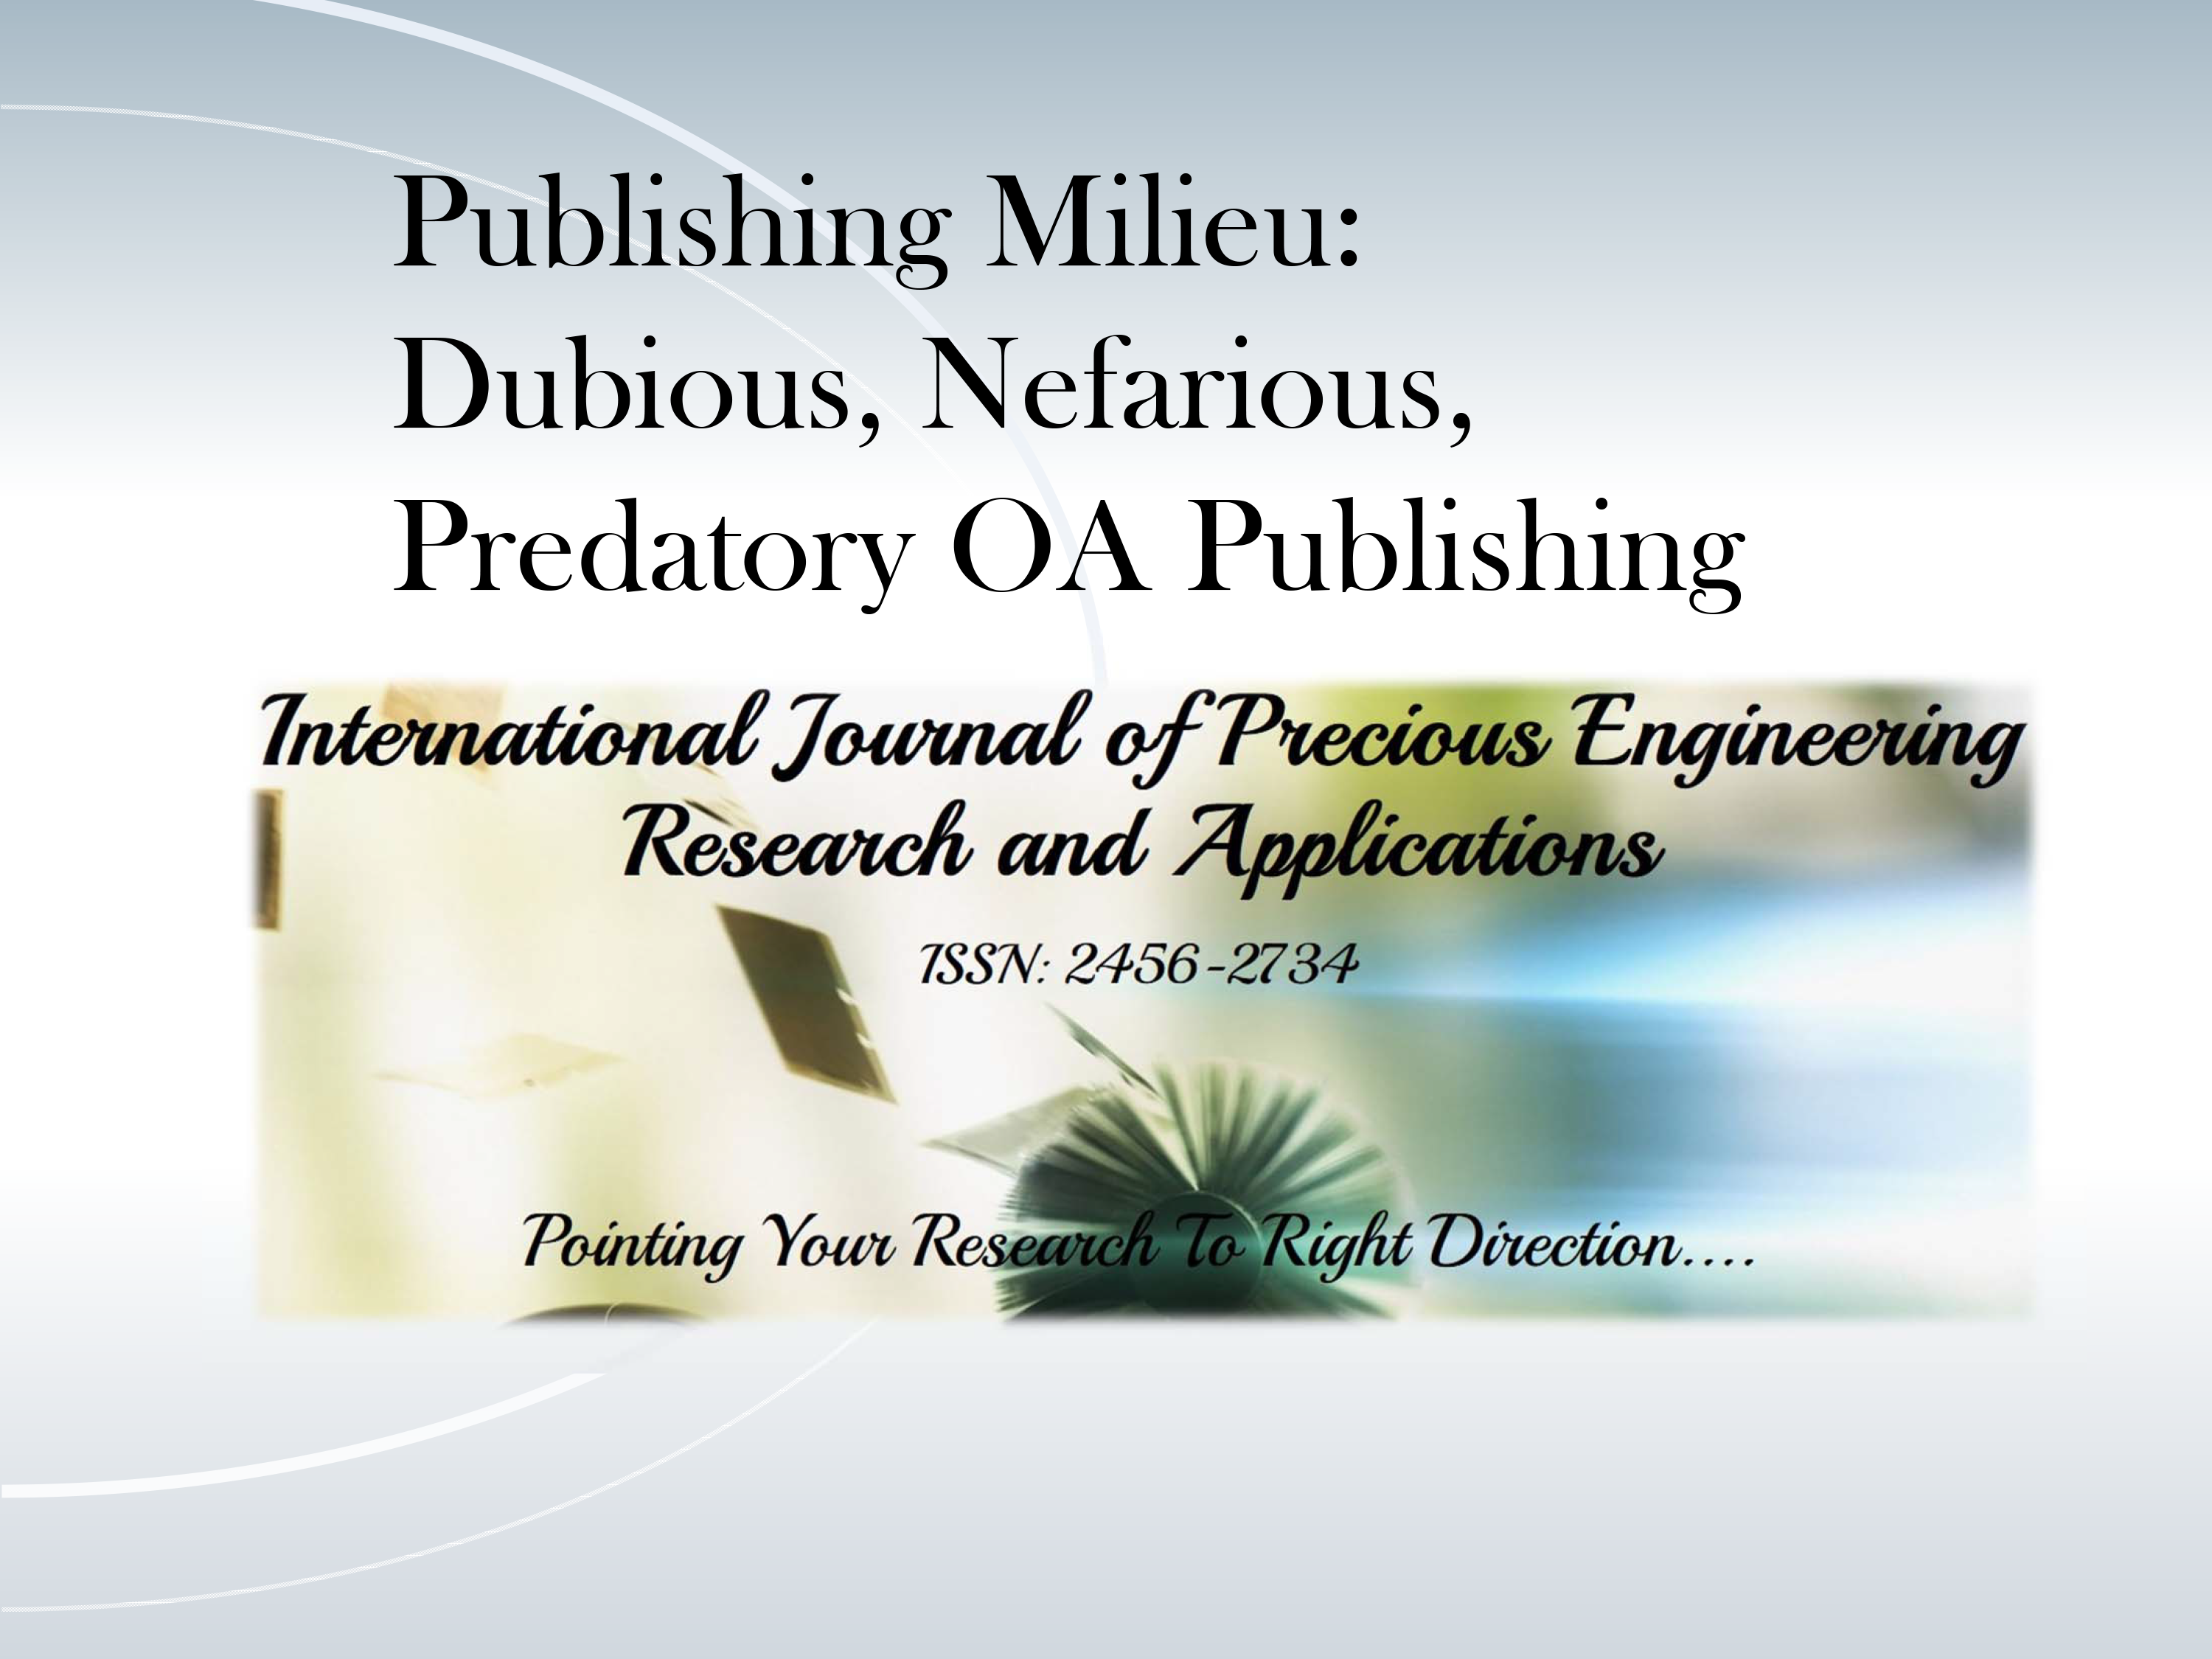 Publishing Milieu:  Dubious, Nefarious, Predatory OA Publishing